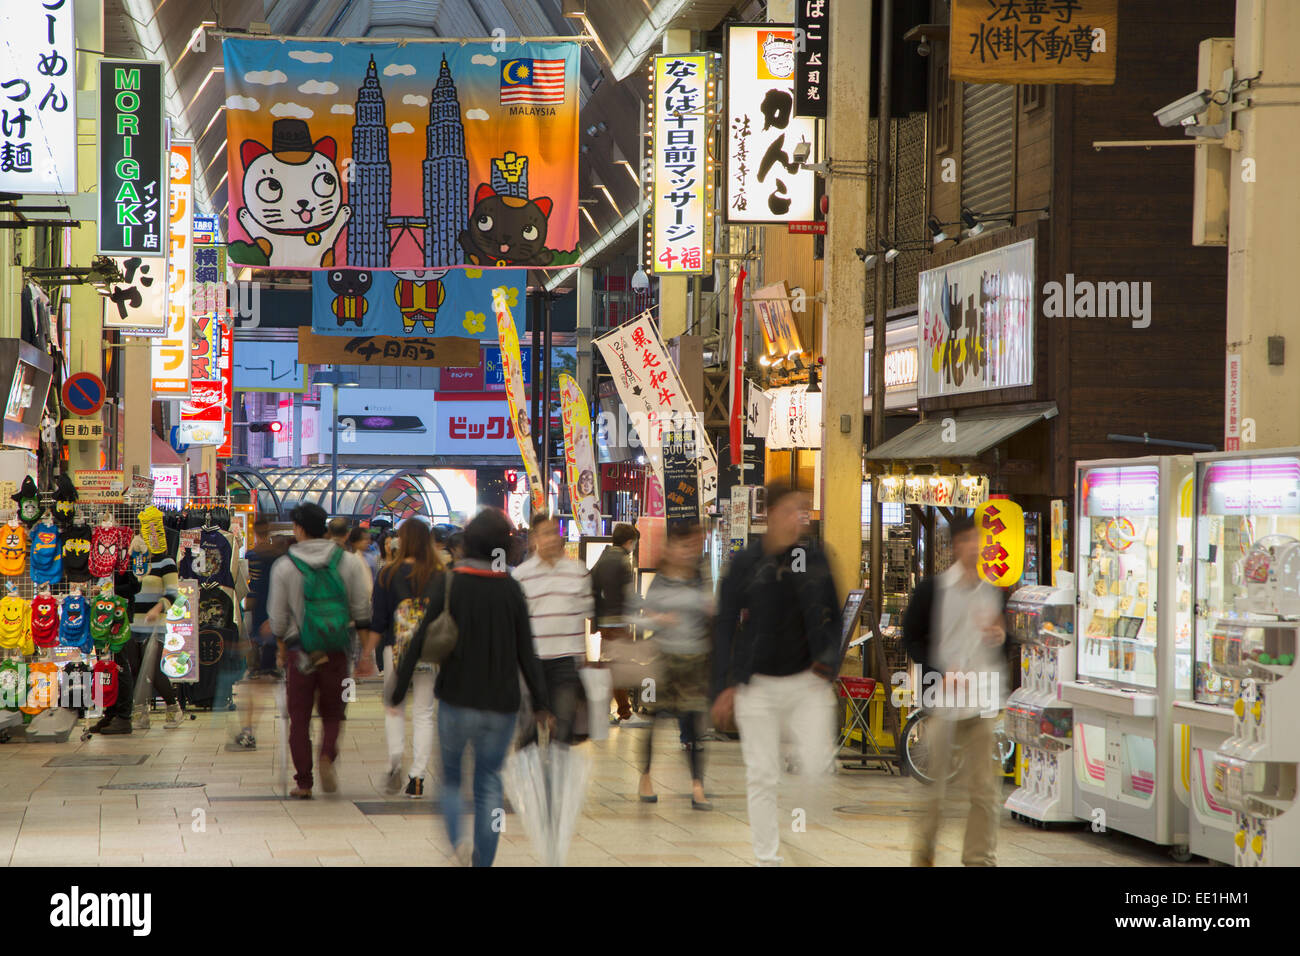 Shopping arcade in Nipponbashi, Osaka, Kansai, Japan, Asia - Stock Image